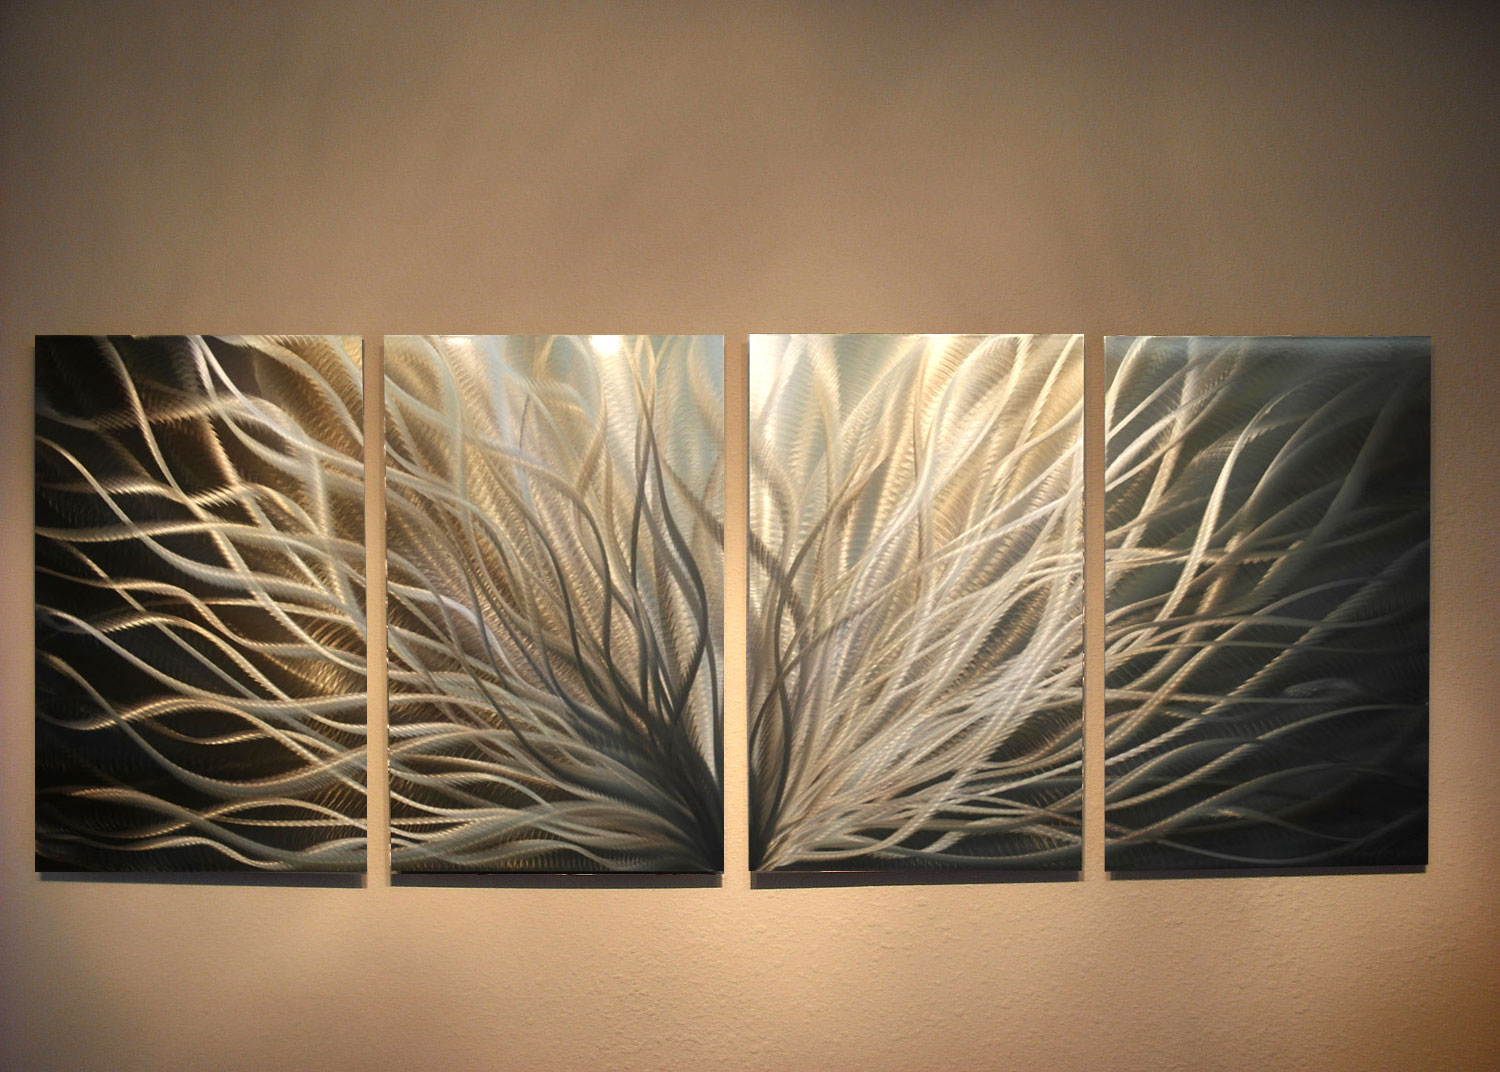 Abstract metal wall art radiance gold silver for Gold wall art